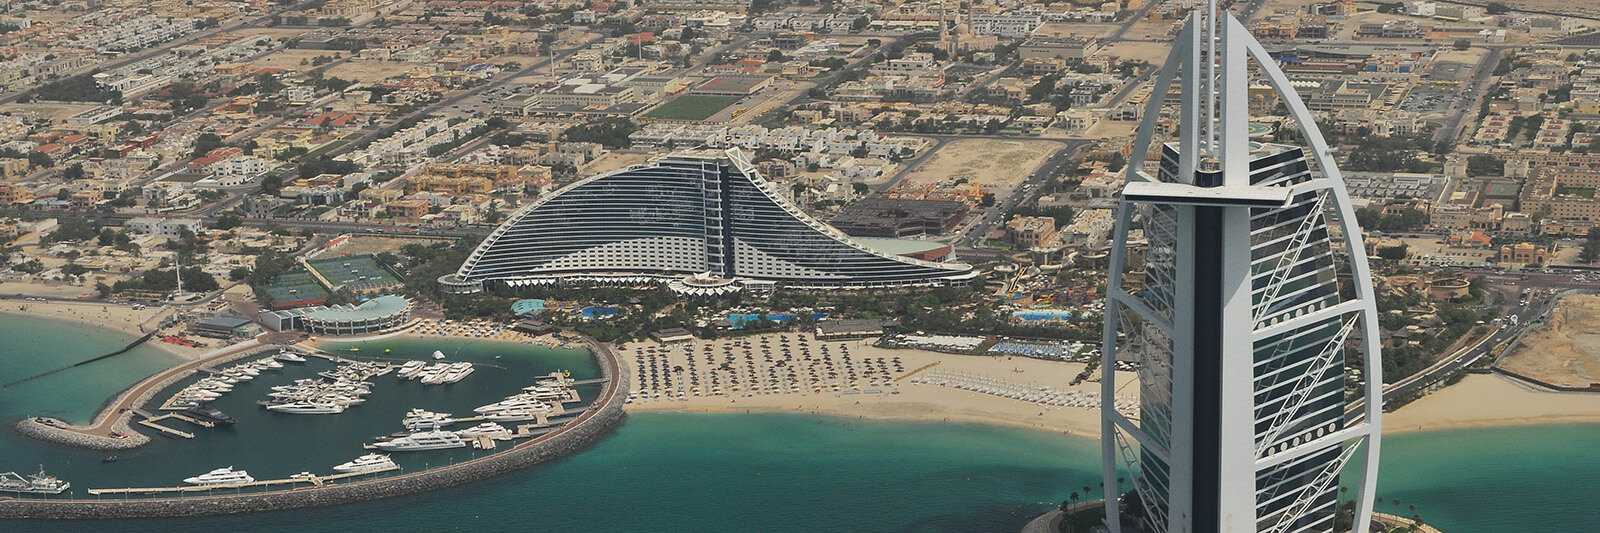 Aerial view of the Burj Al Arab Jumeirah in Dubai, United Arab Emirates